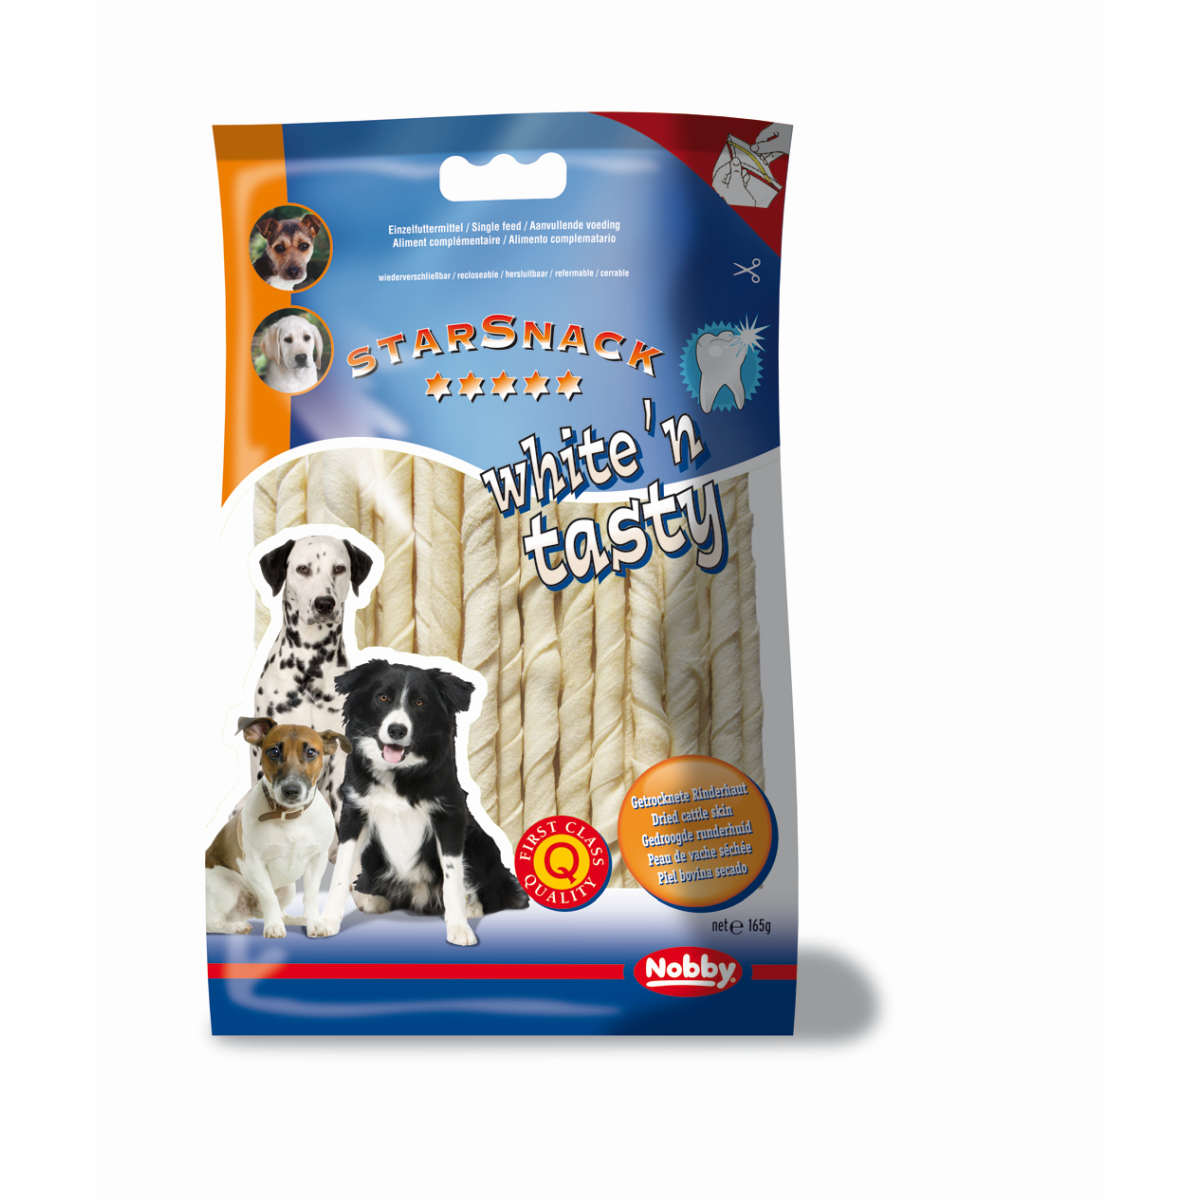 Starsnack white&tasty twist wit 165 gr